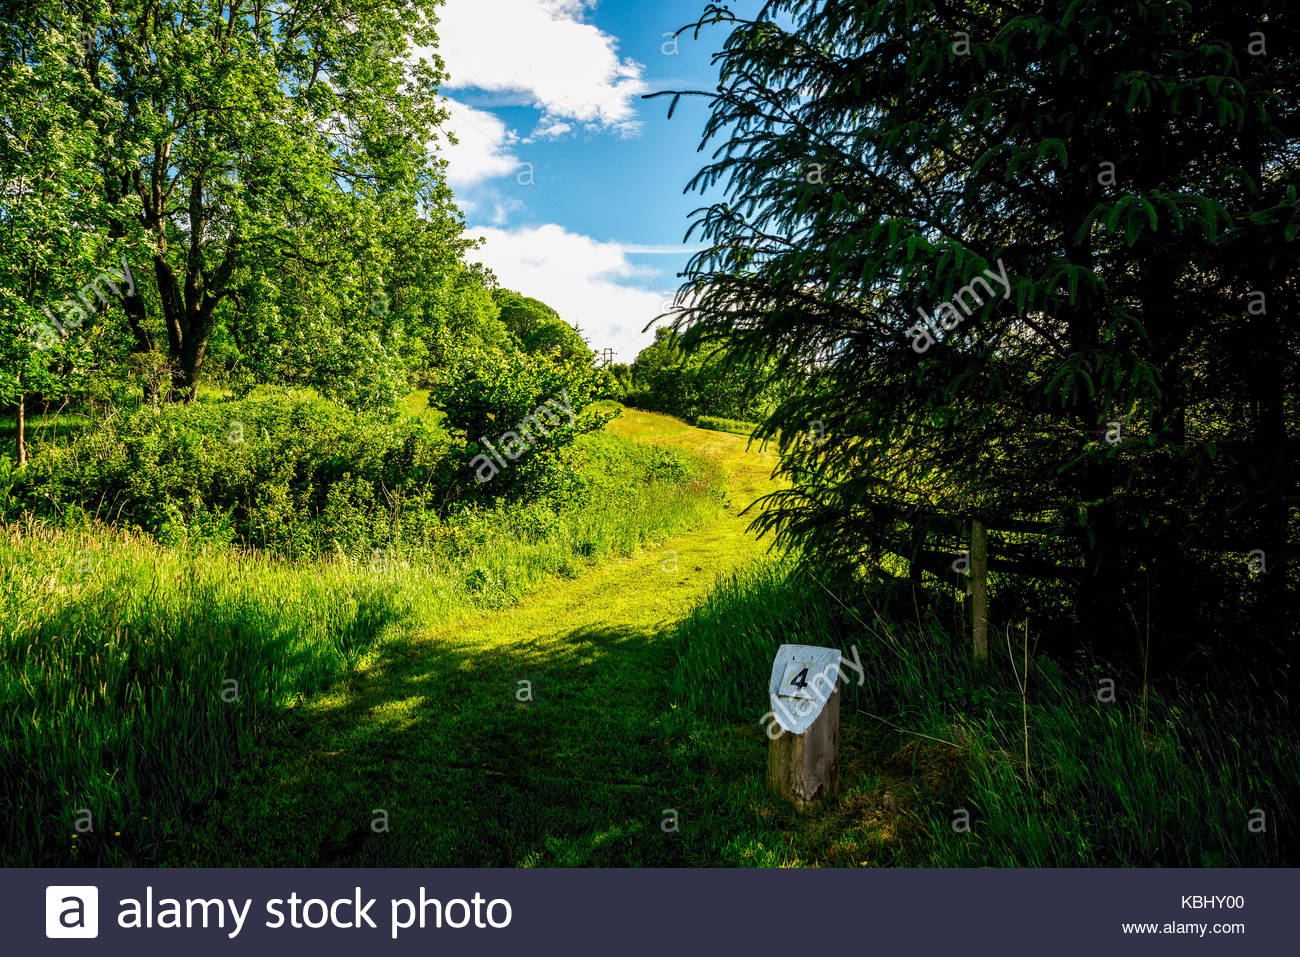 Hole number four tee off point at Loch Tay flying disc golf course, central Scotland - Stock Image